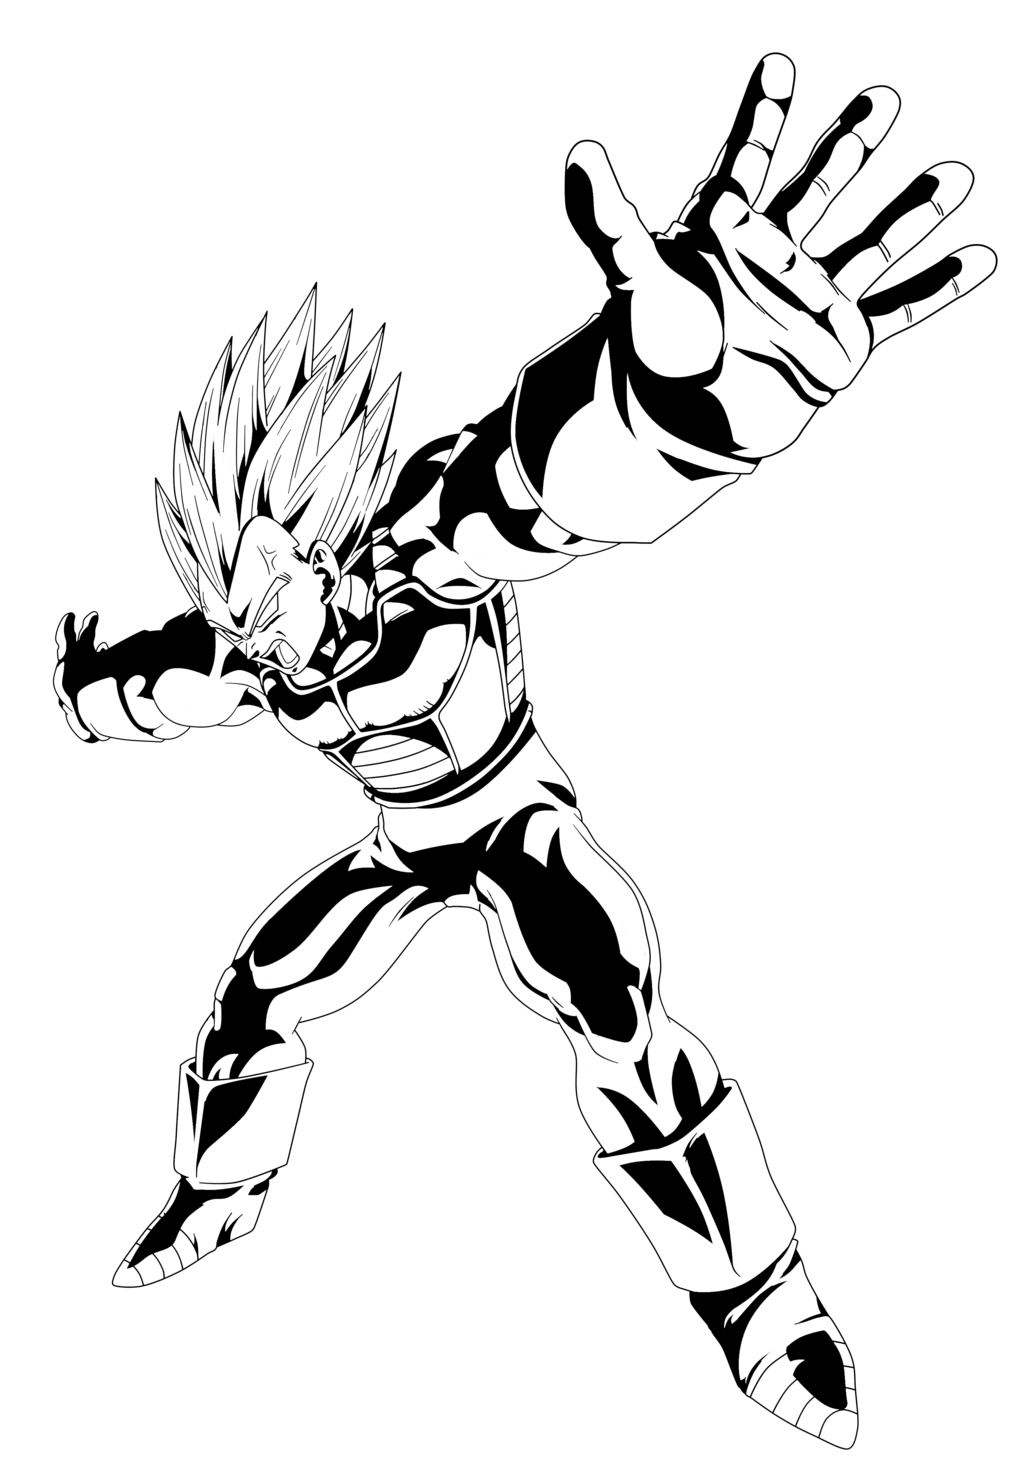 Ssj by pedronex on. Vegeta vector art svg library download